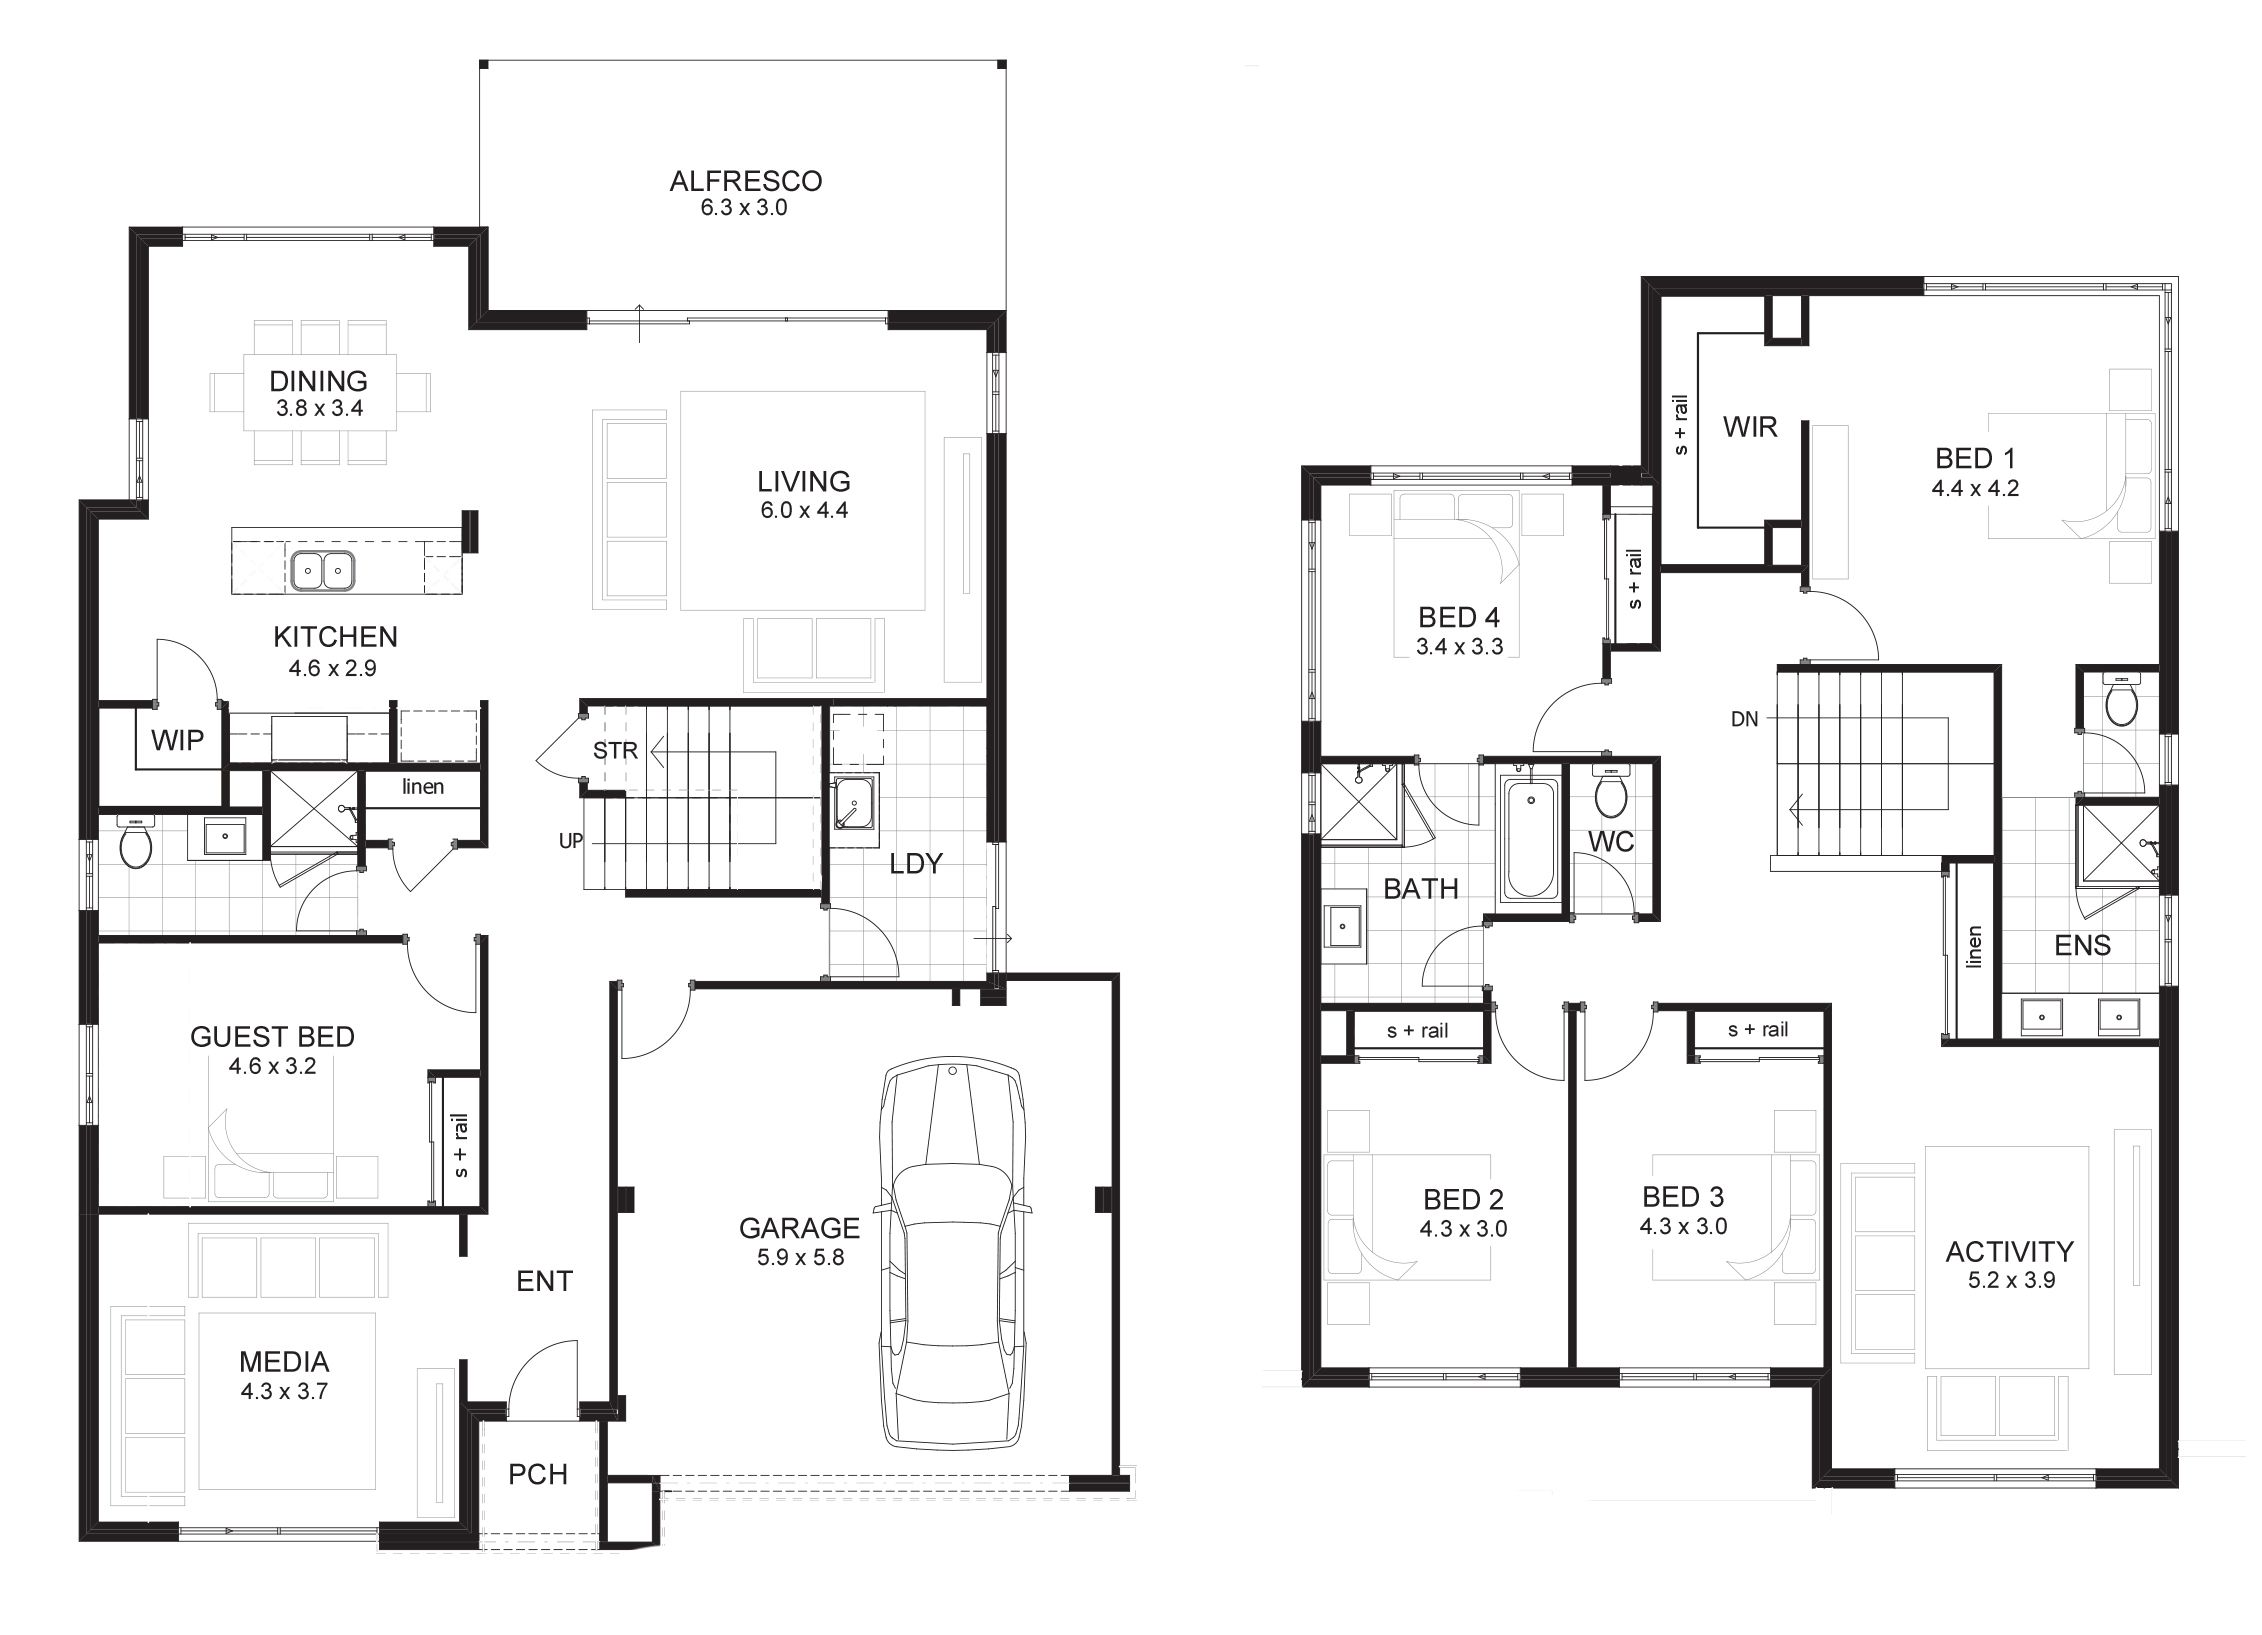 6 bedroom house plans perth pinterest for Home designs 6 bedrooms